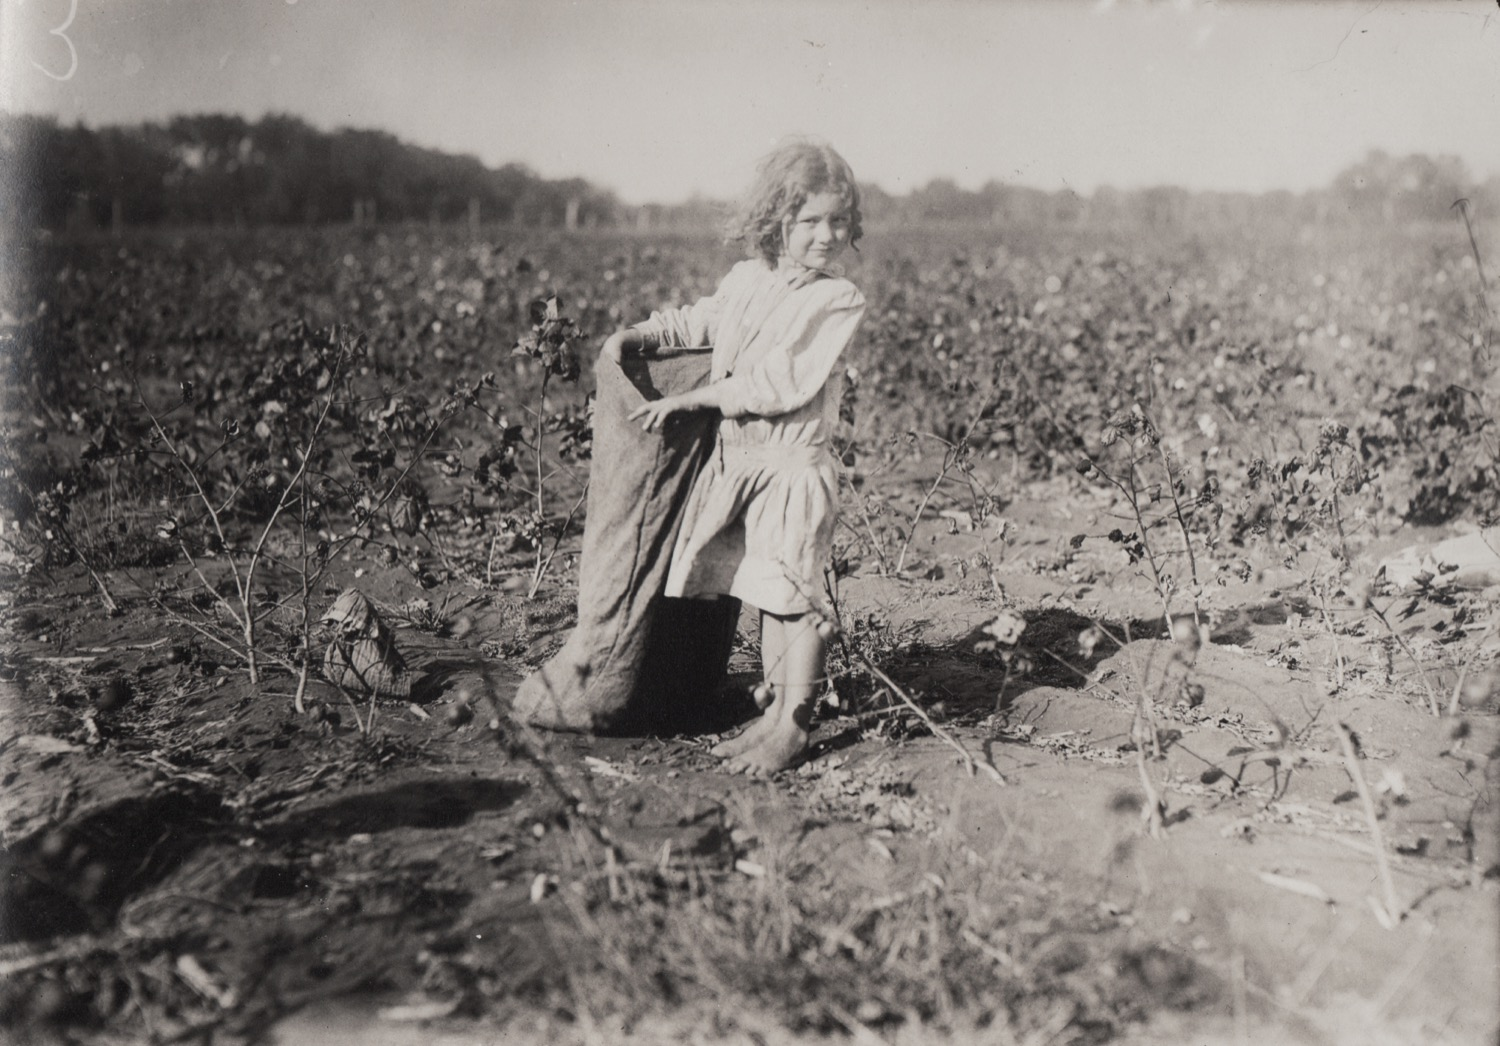 Lewis HINE, Cotton Picker Girl